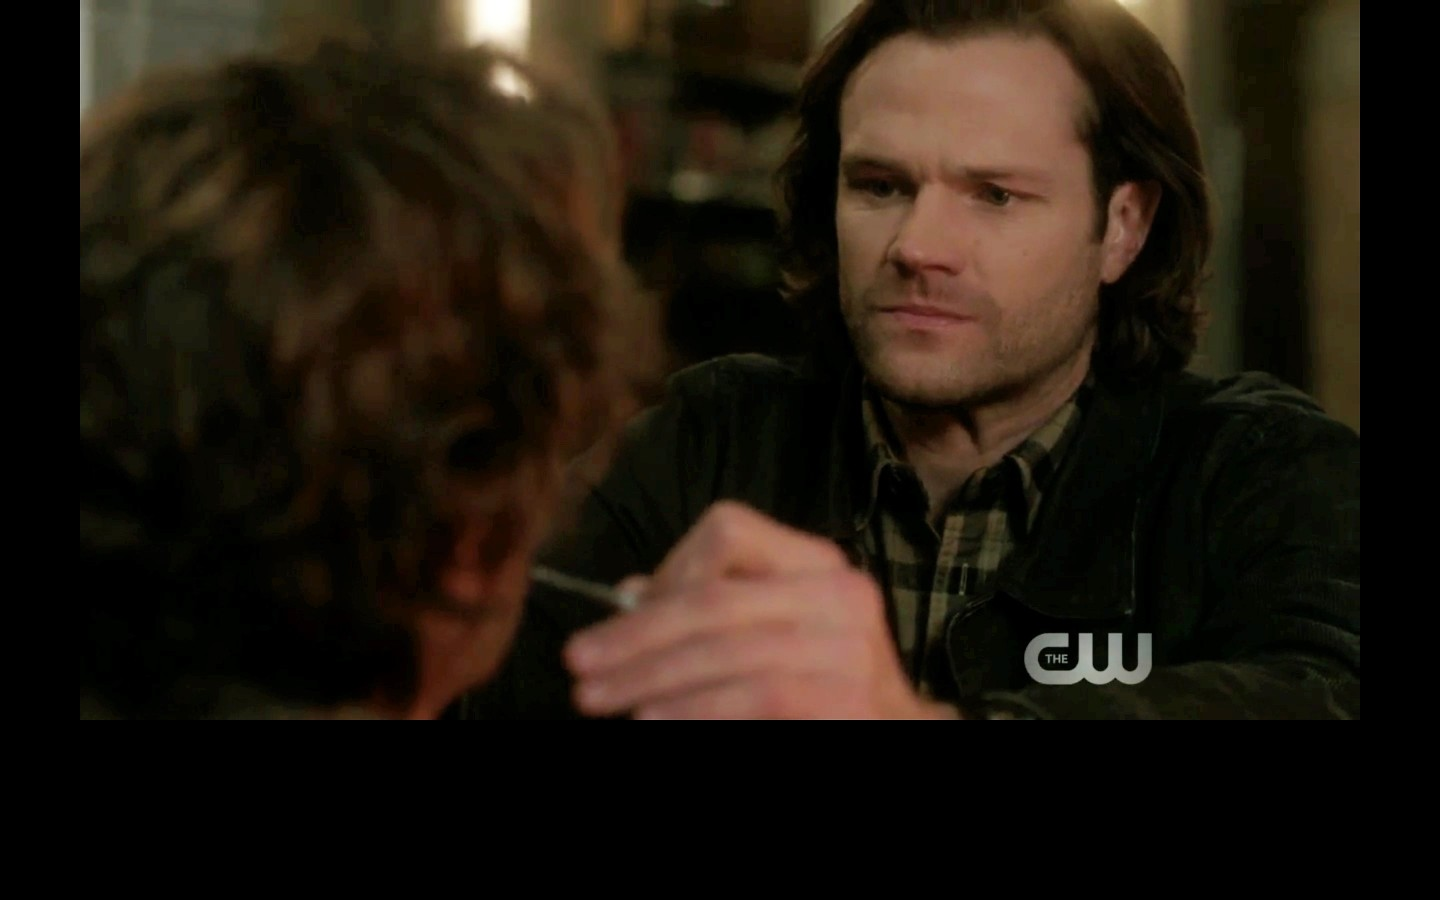 The Thing brings iconic 'Supernatural' | Movie TV Tech Geeks